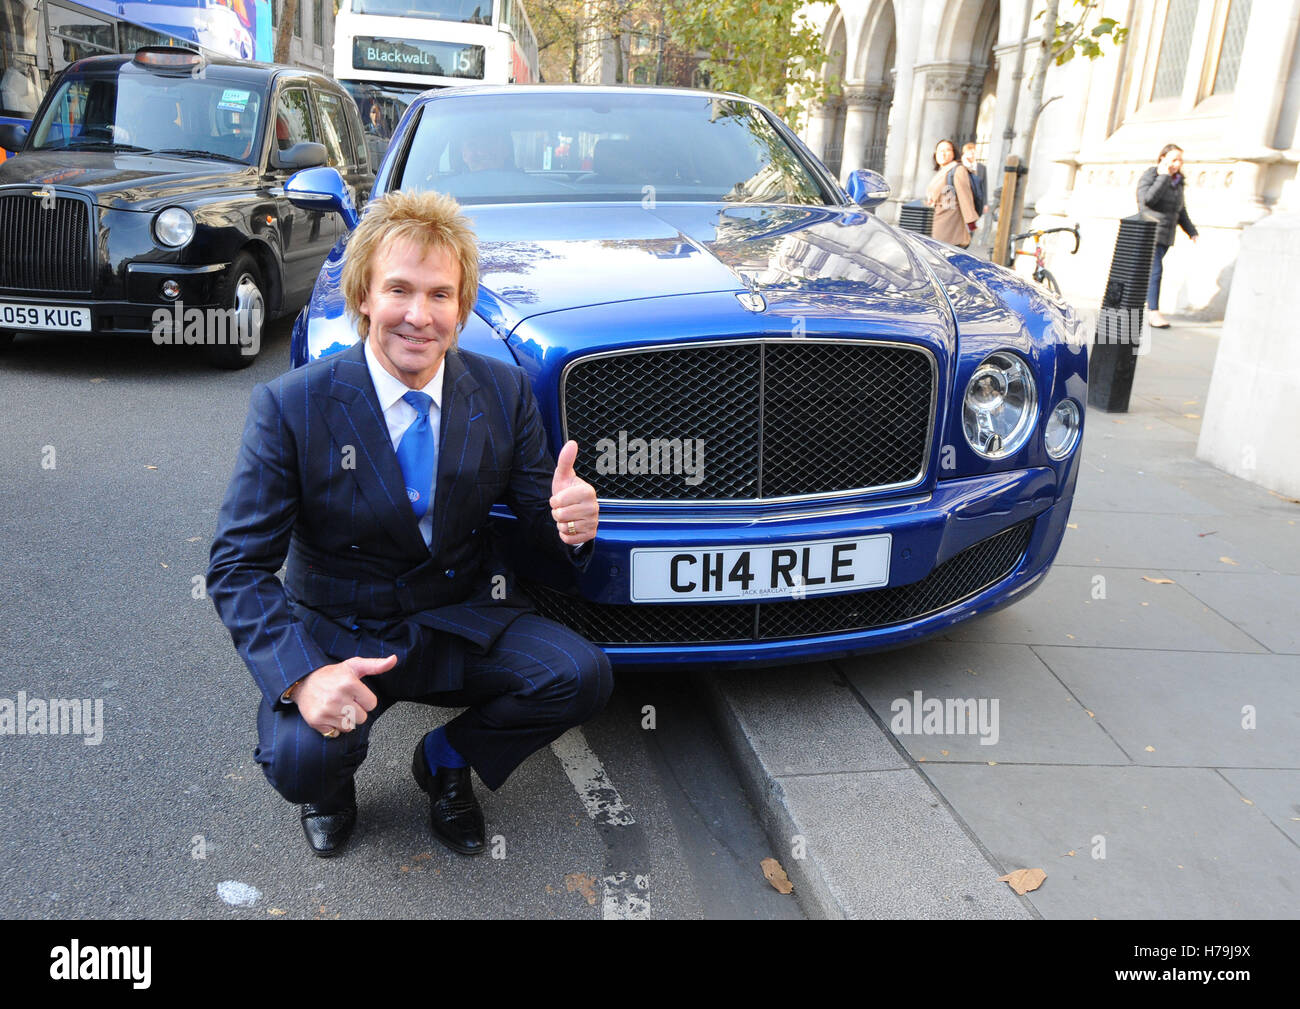 Managing Director Of Pimlico Plumbers Charlie Mullins Outside The High Court In London Where Three Judges Have Ruled Against The Prime Ministers Decision